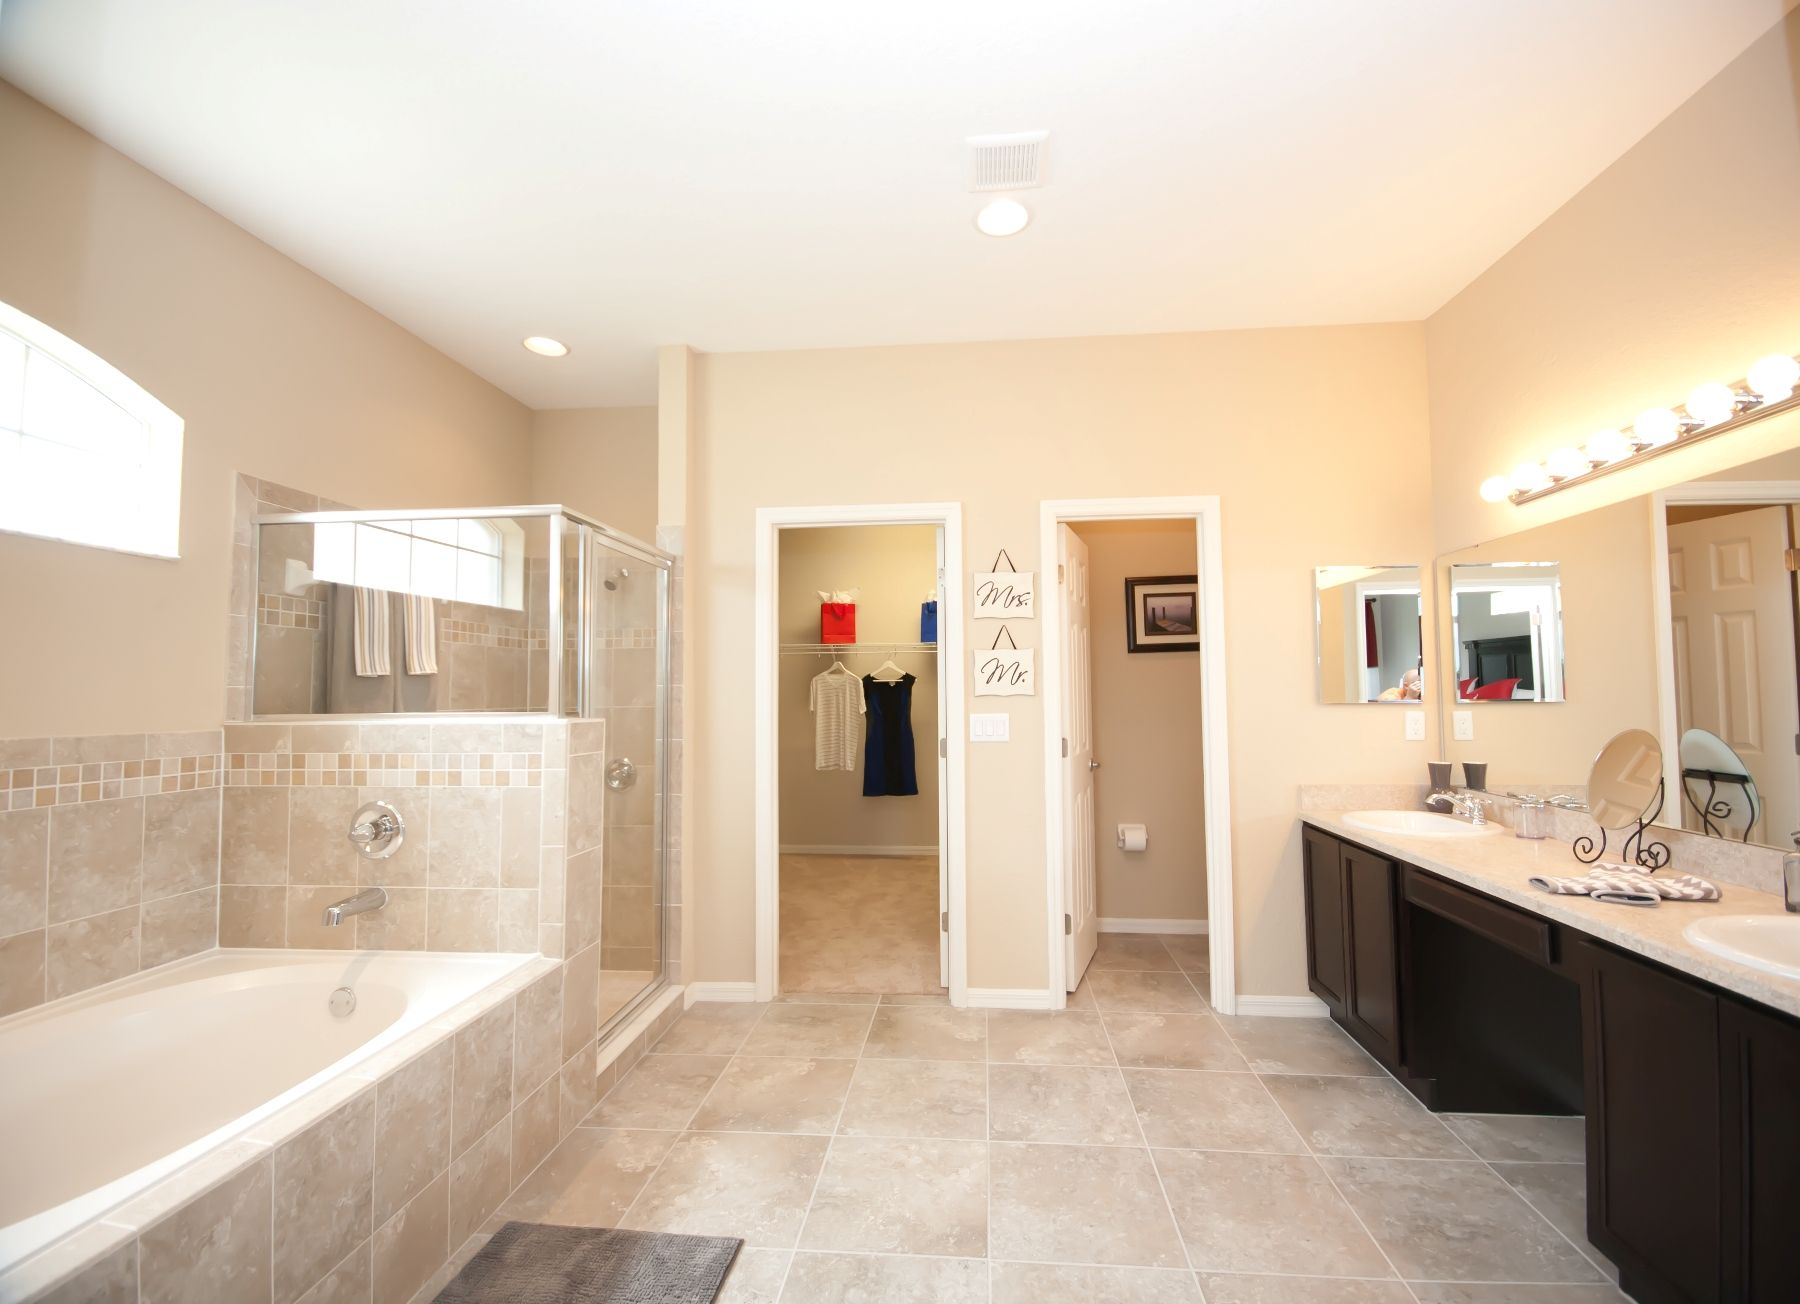 Great lighting open space and warm neutral colors make for Bathroom models photos